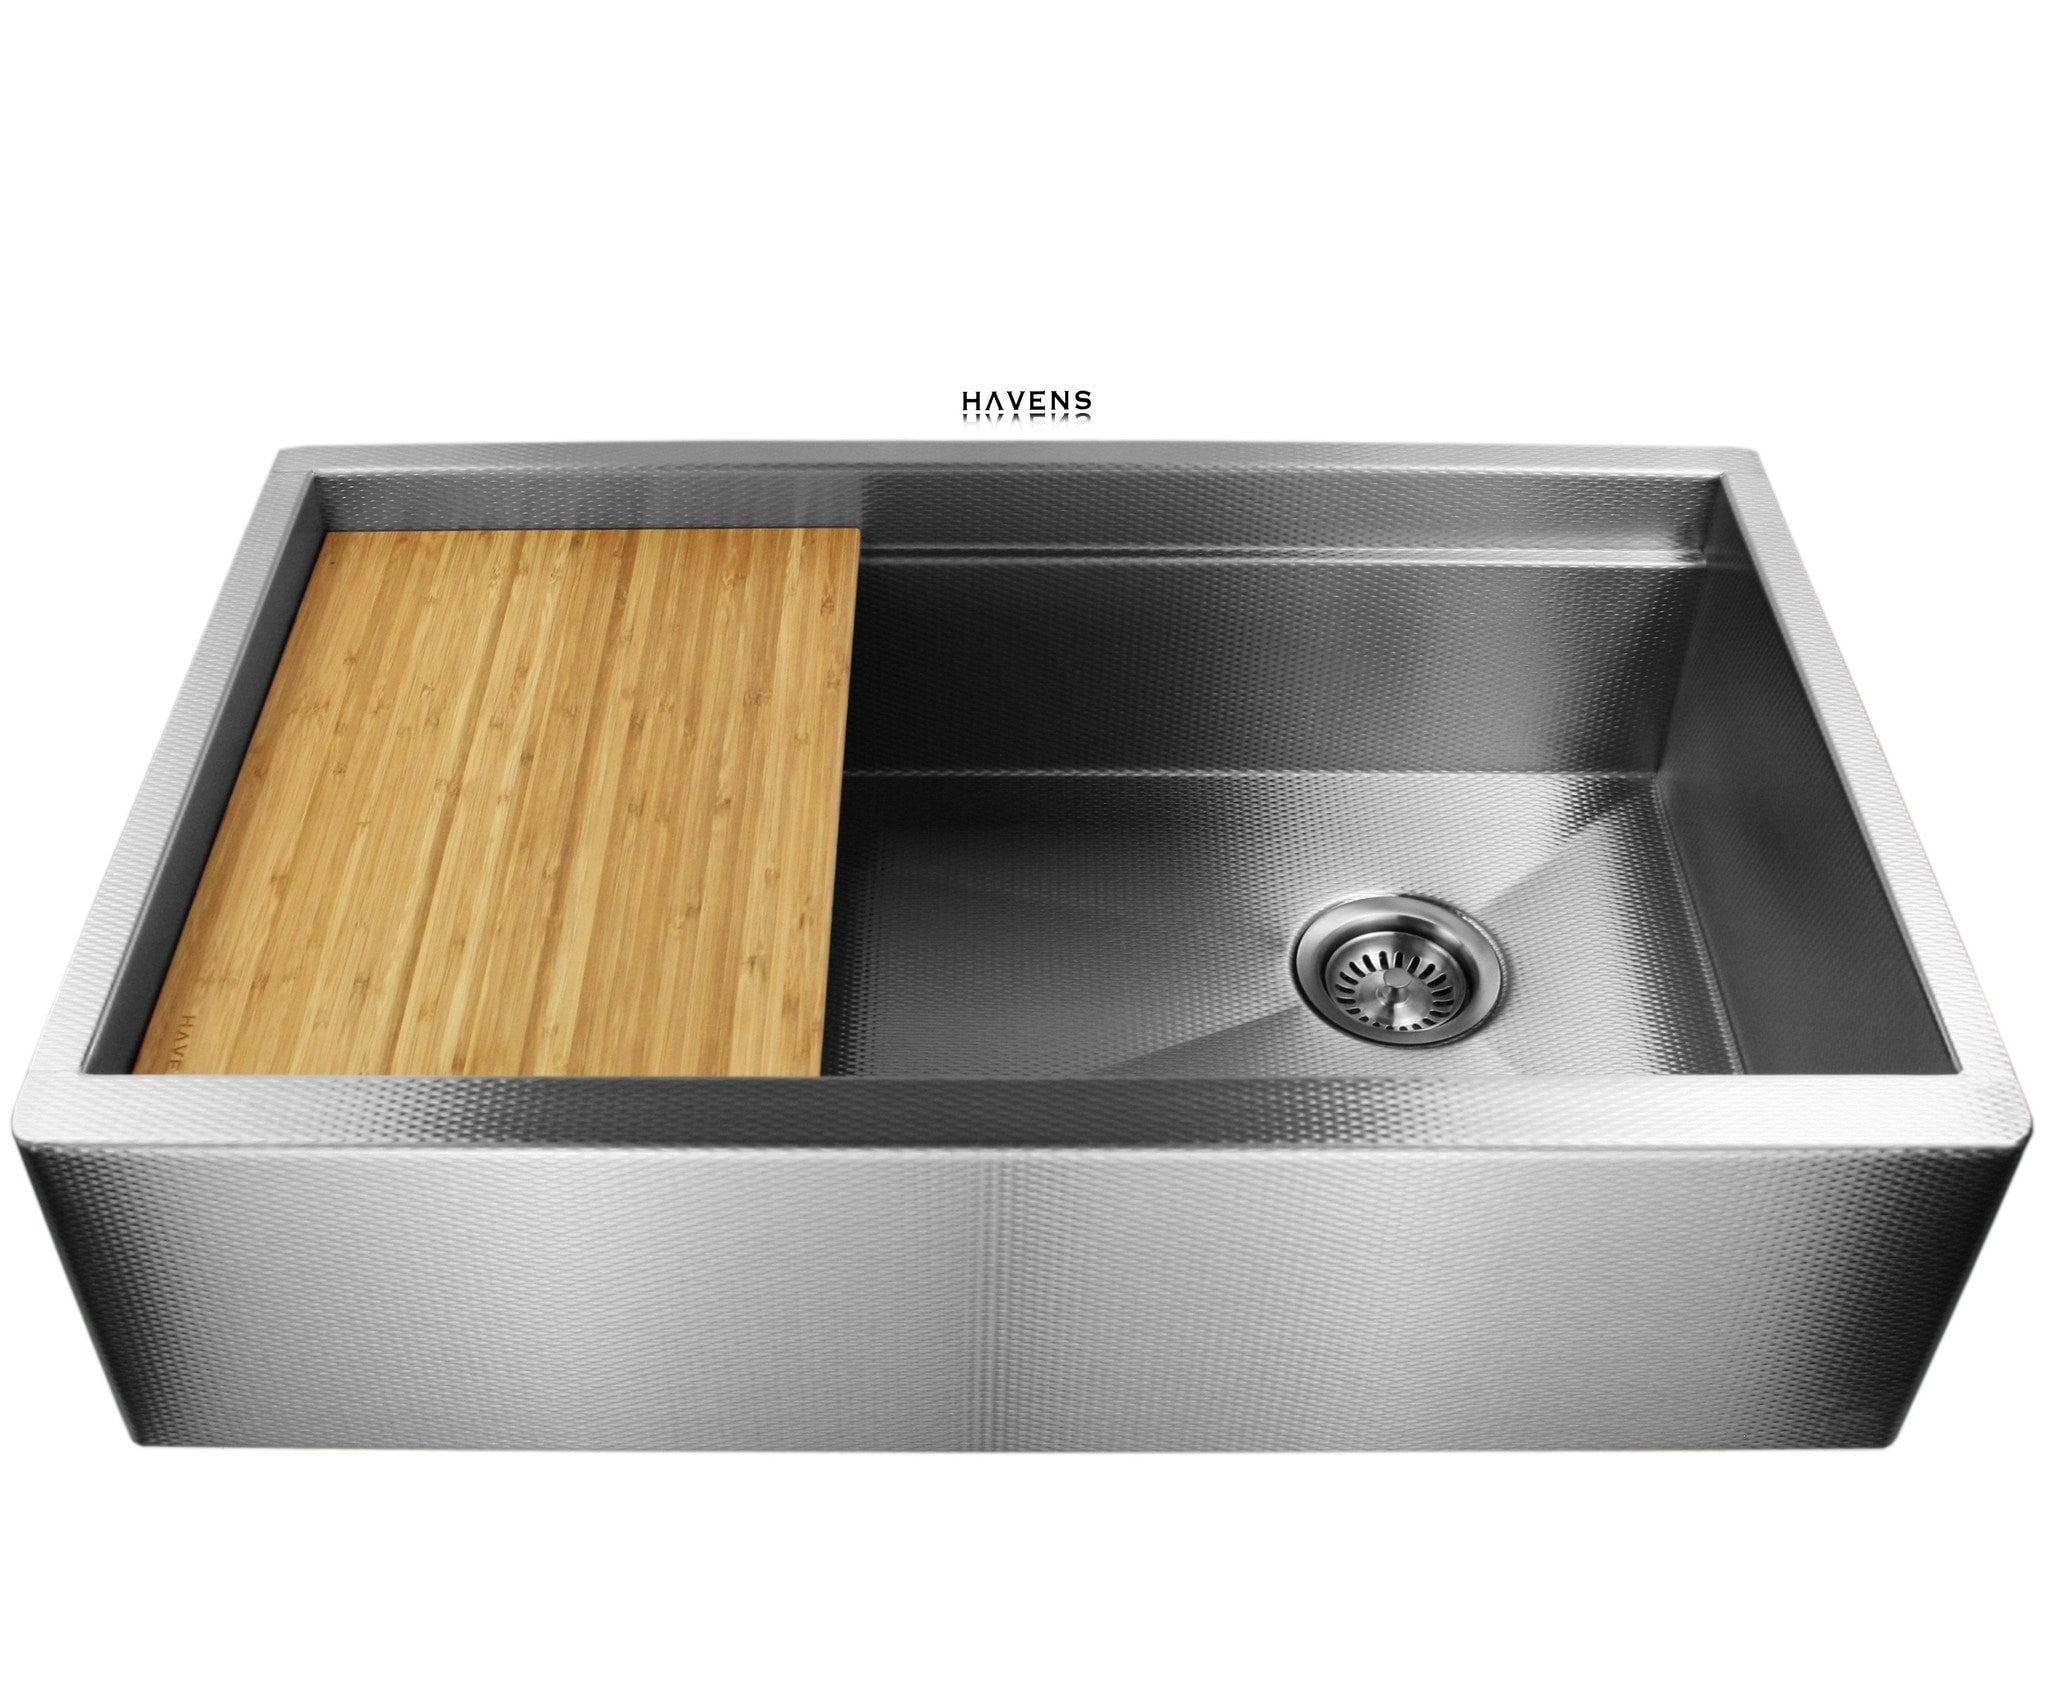 Legacy Stainless Steel Undermount Sink